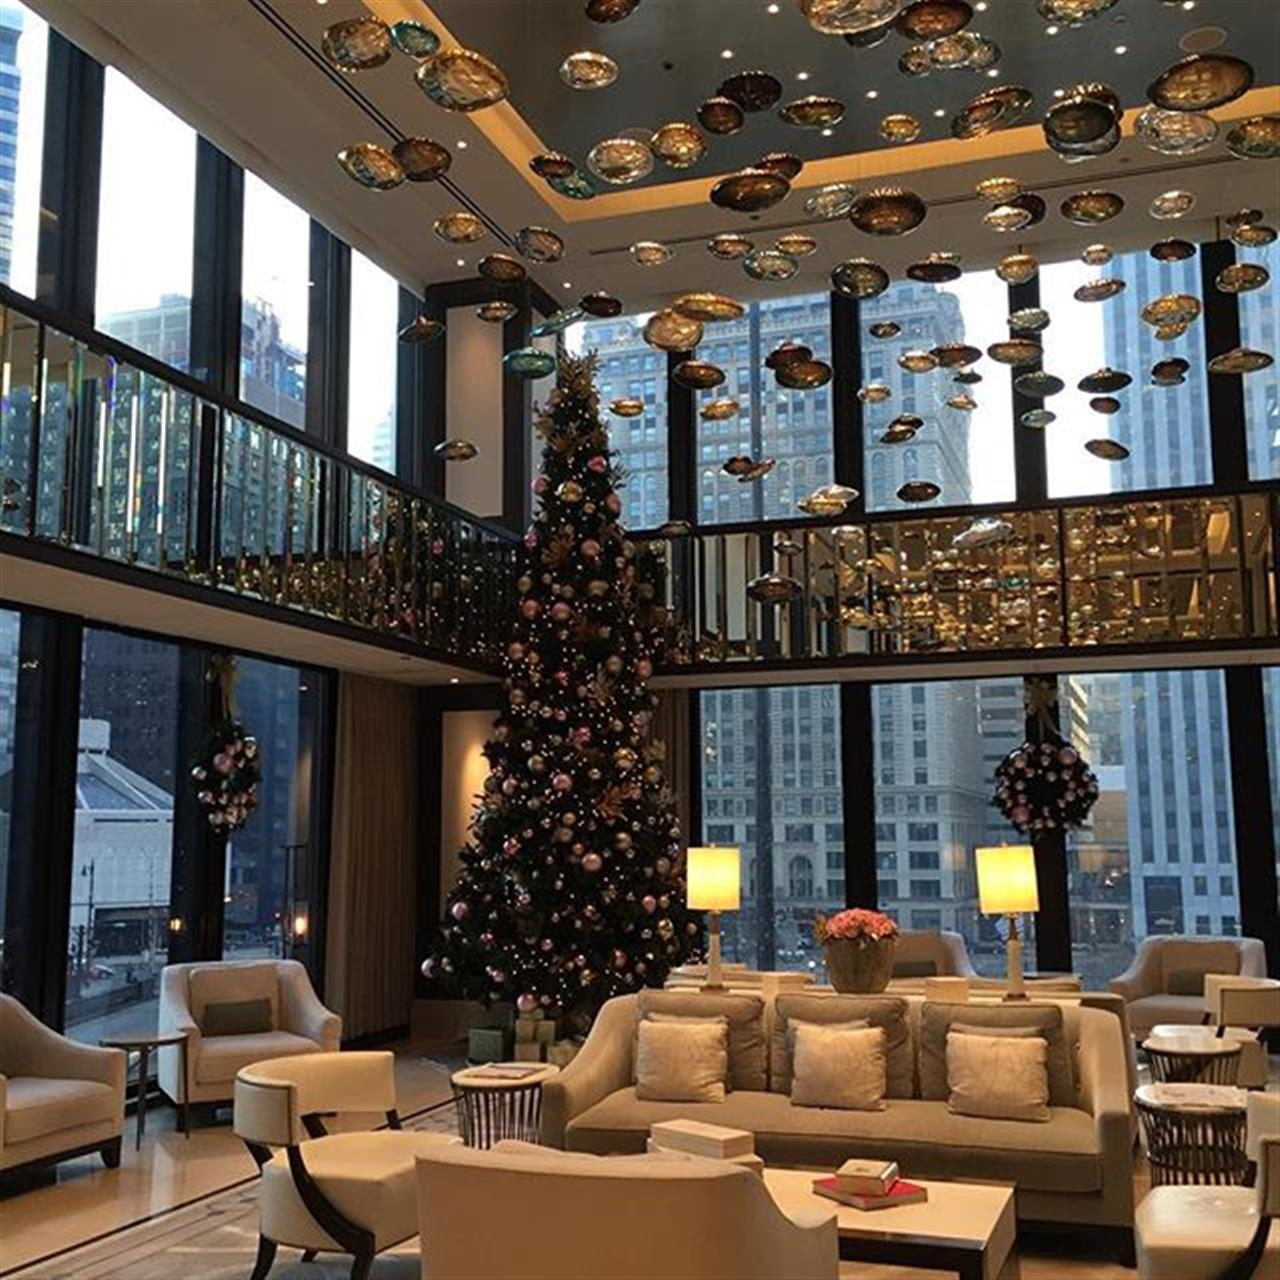 Hate leaving the @langhamchicago it is such a beautiful hotel and is all dressed up for the Holidays! Till next time #Chicago ! #LuxuryPortfolio #globalrealestate #HoulihanLawrence #leadingre